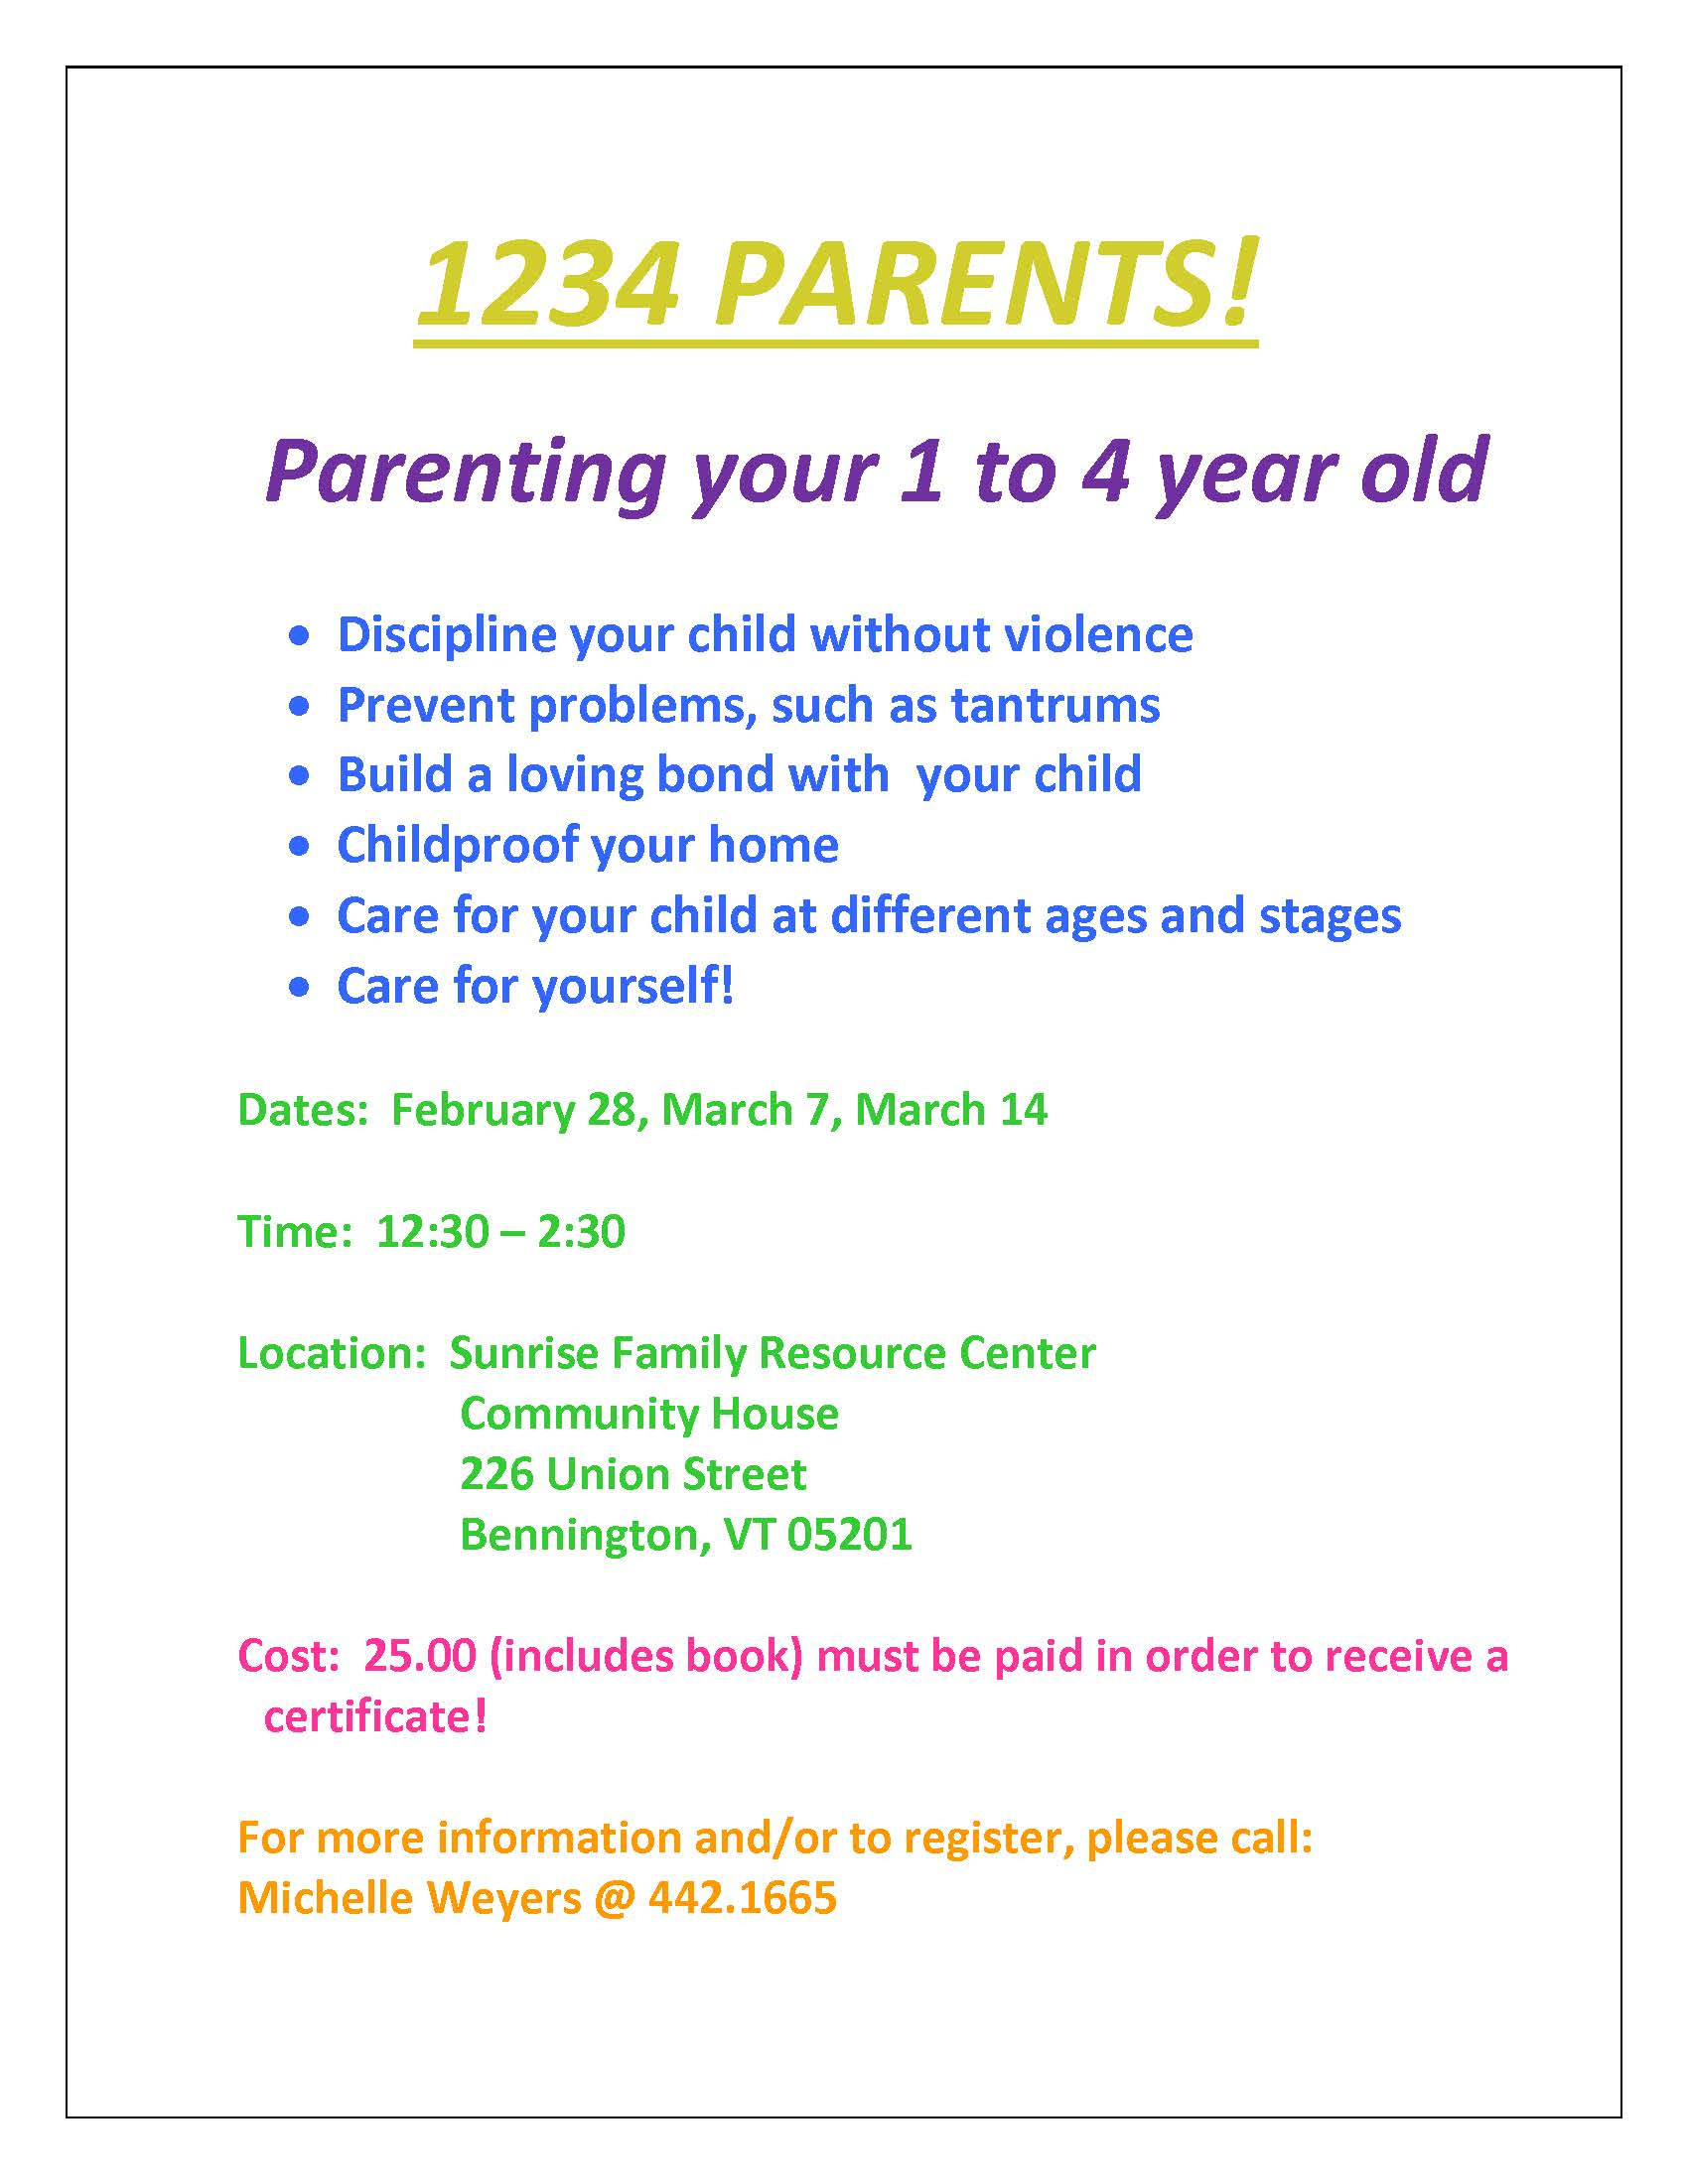 1234 PARENTS flyer